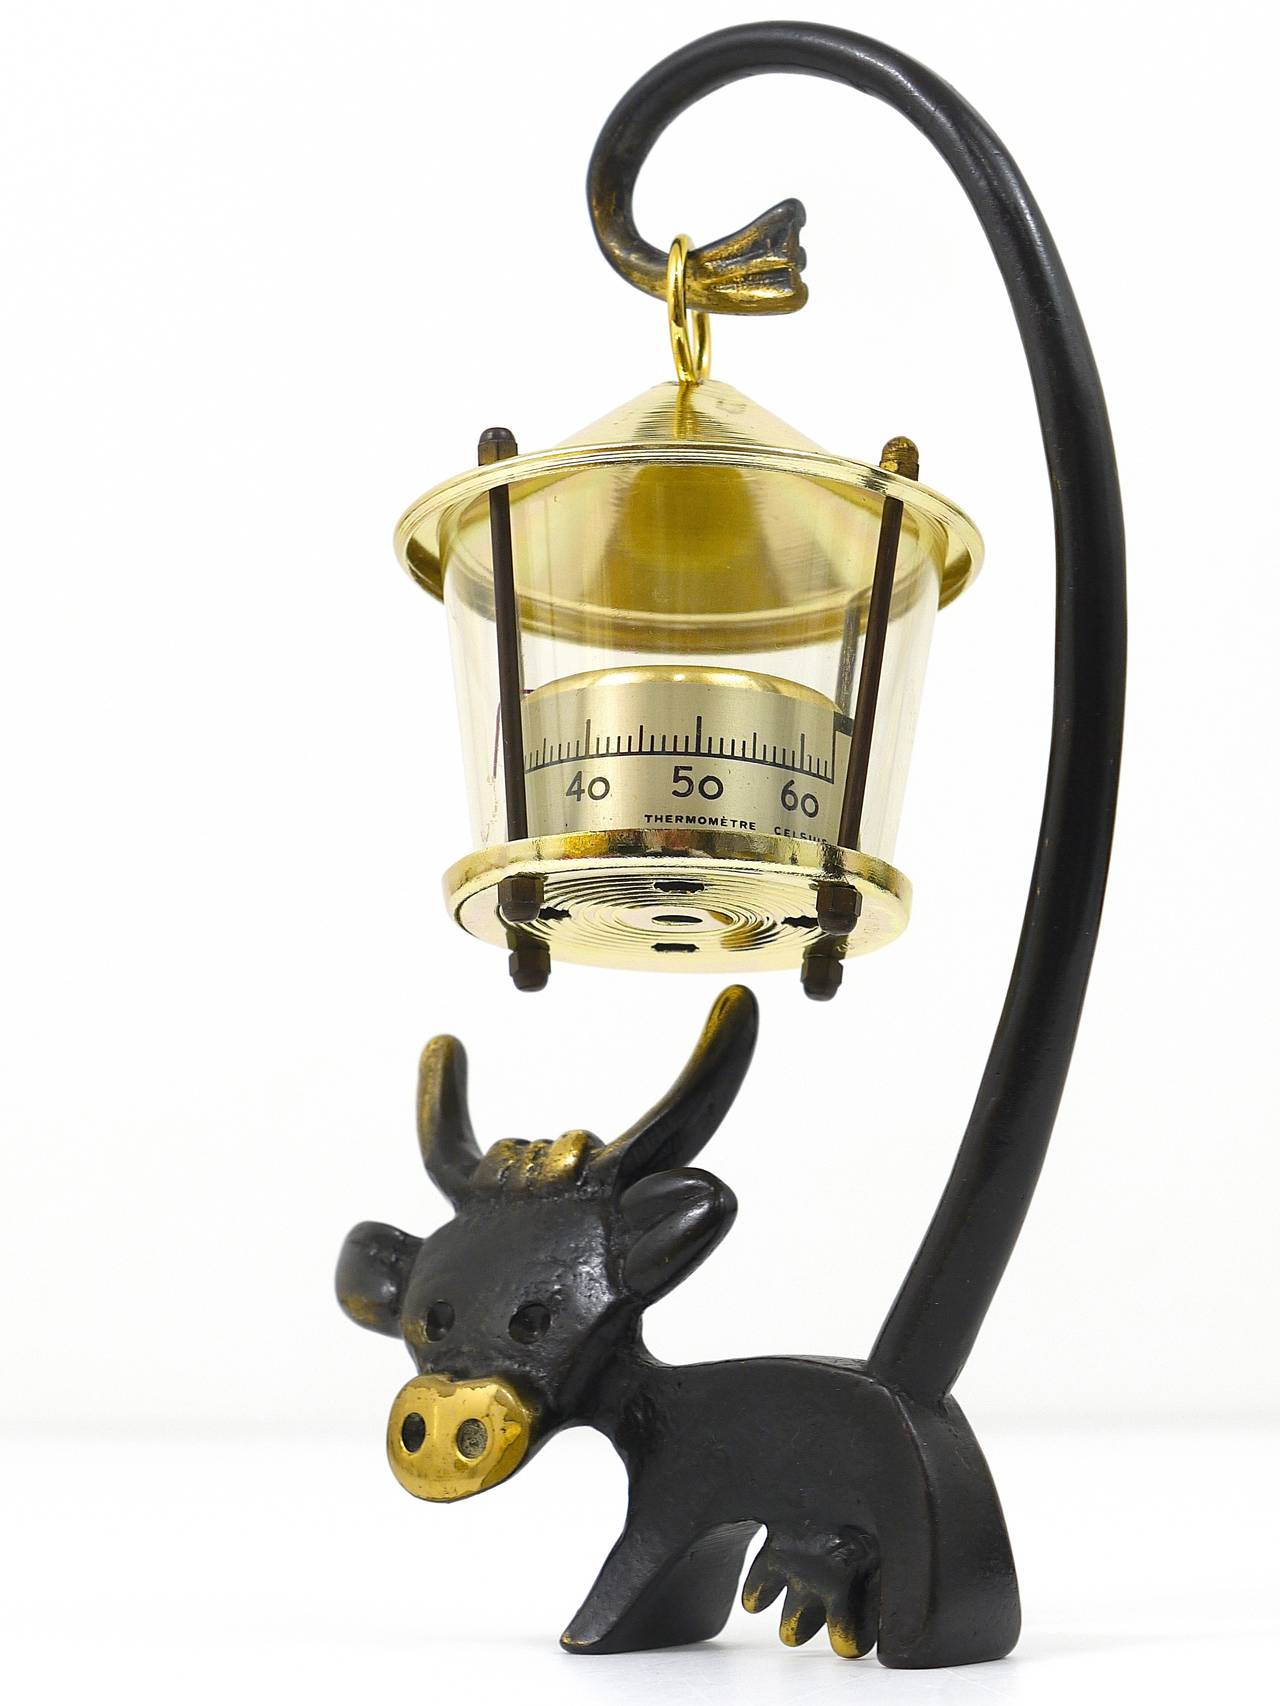 Austrian Walter Bosse Cow Figurine with Thermometer by Hertha Baller, Austria, 1950s For Sale